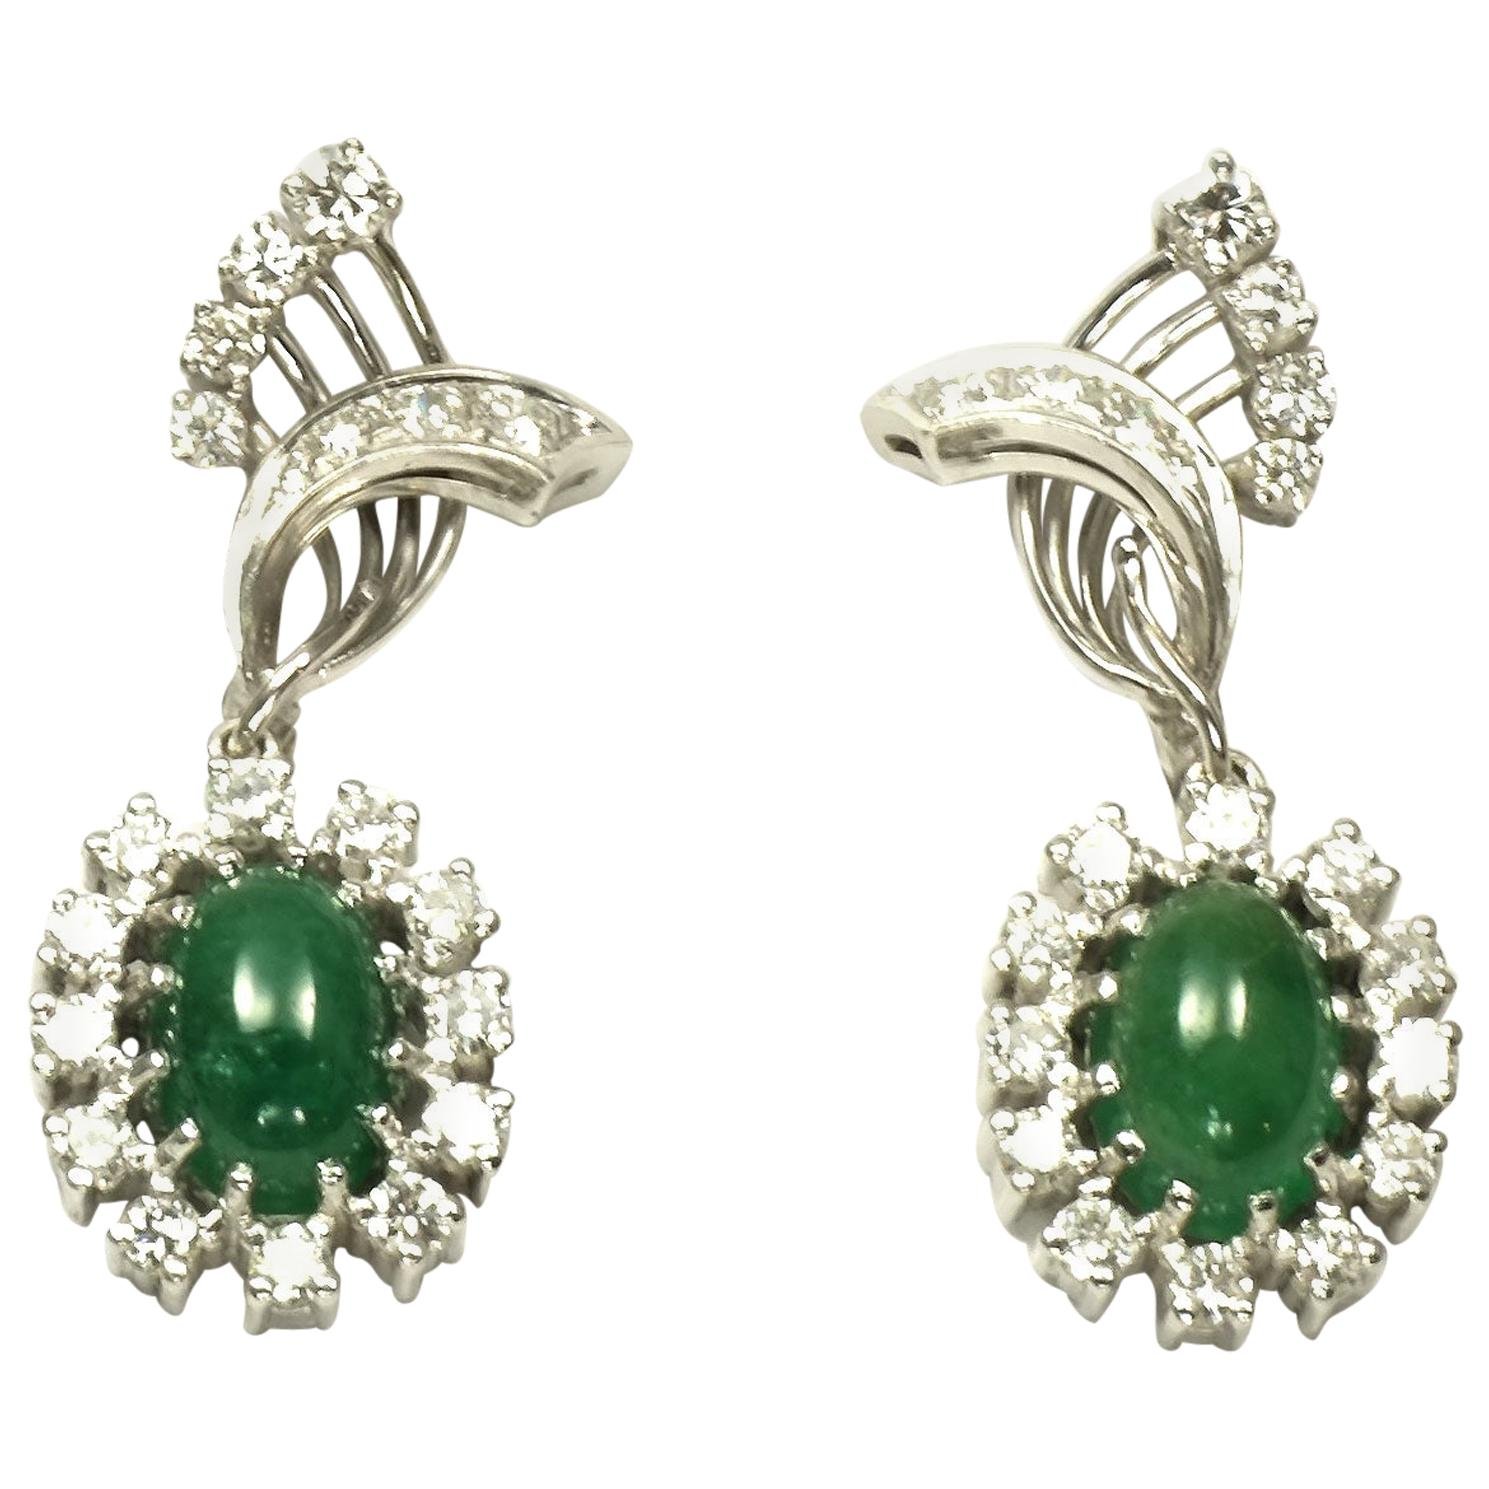 Emerald Cabochon and 2.6 Carat Diamond Clip-On Drop Earrings in 18 Karat Gold